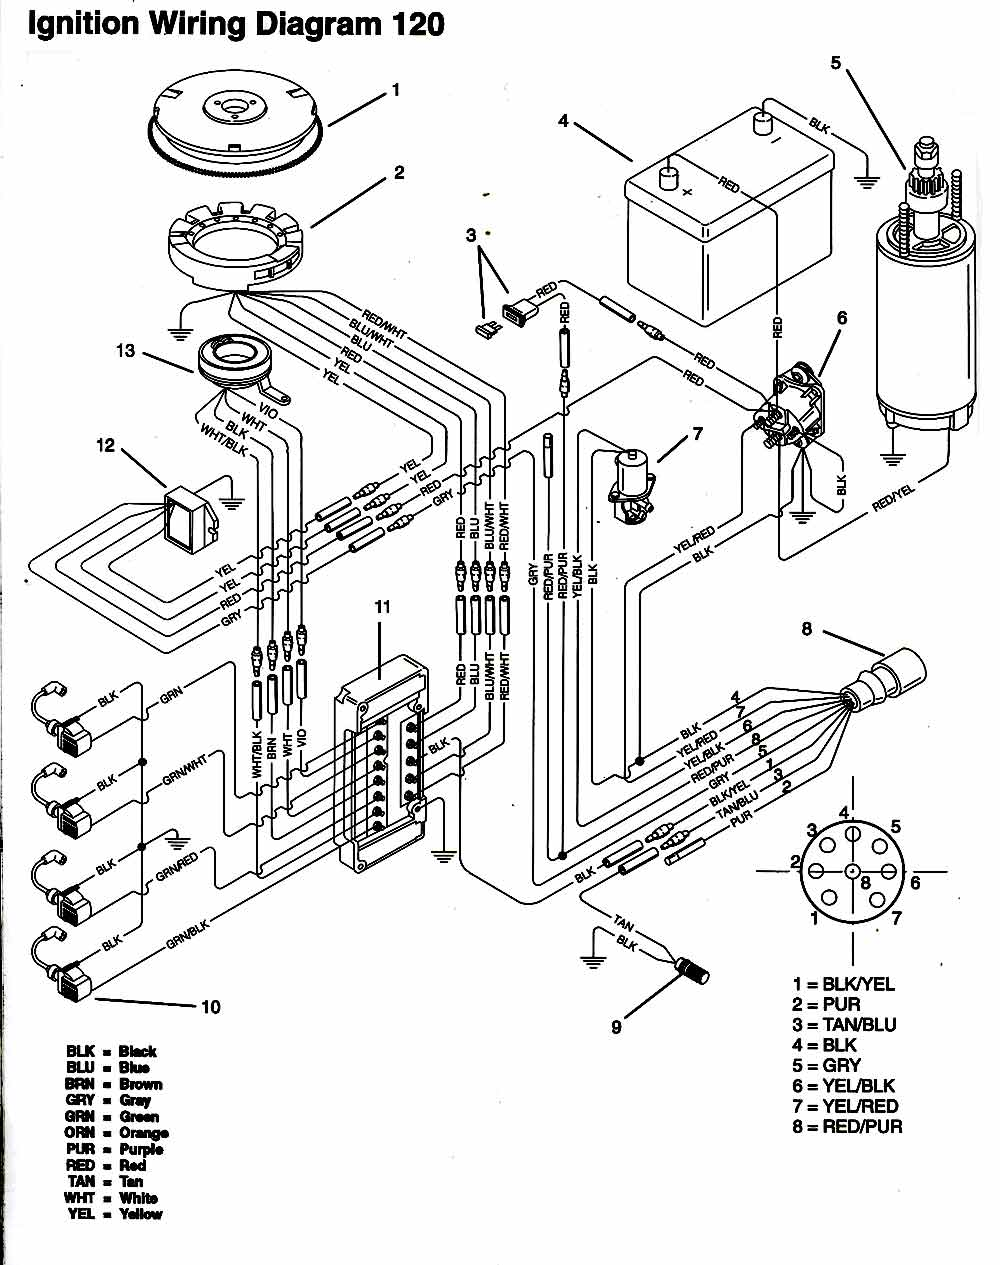 40 Hp Outboard Motor Wiring Diagram For Ignition, 40, Free